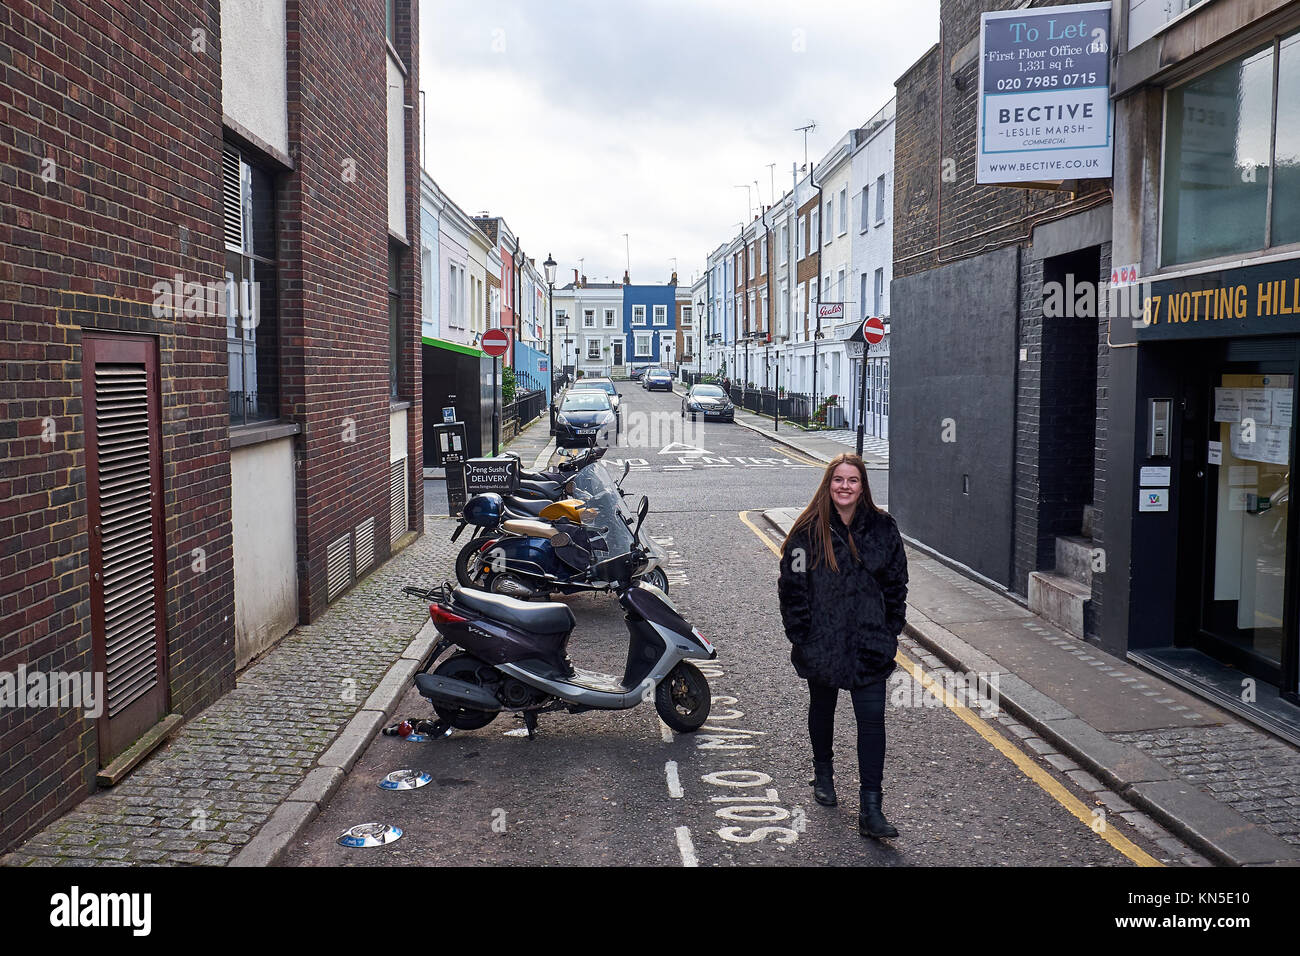 Girl walking in an alley with mopeds parked at the curb - Stock Image